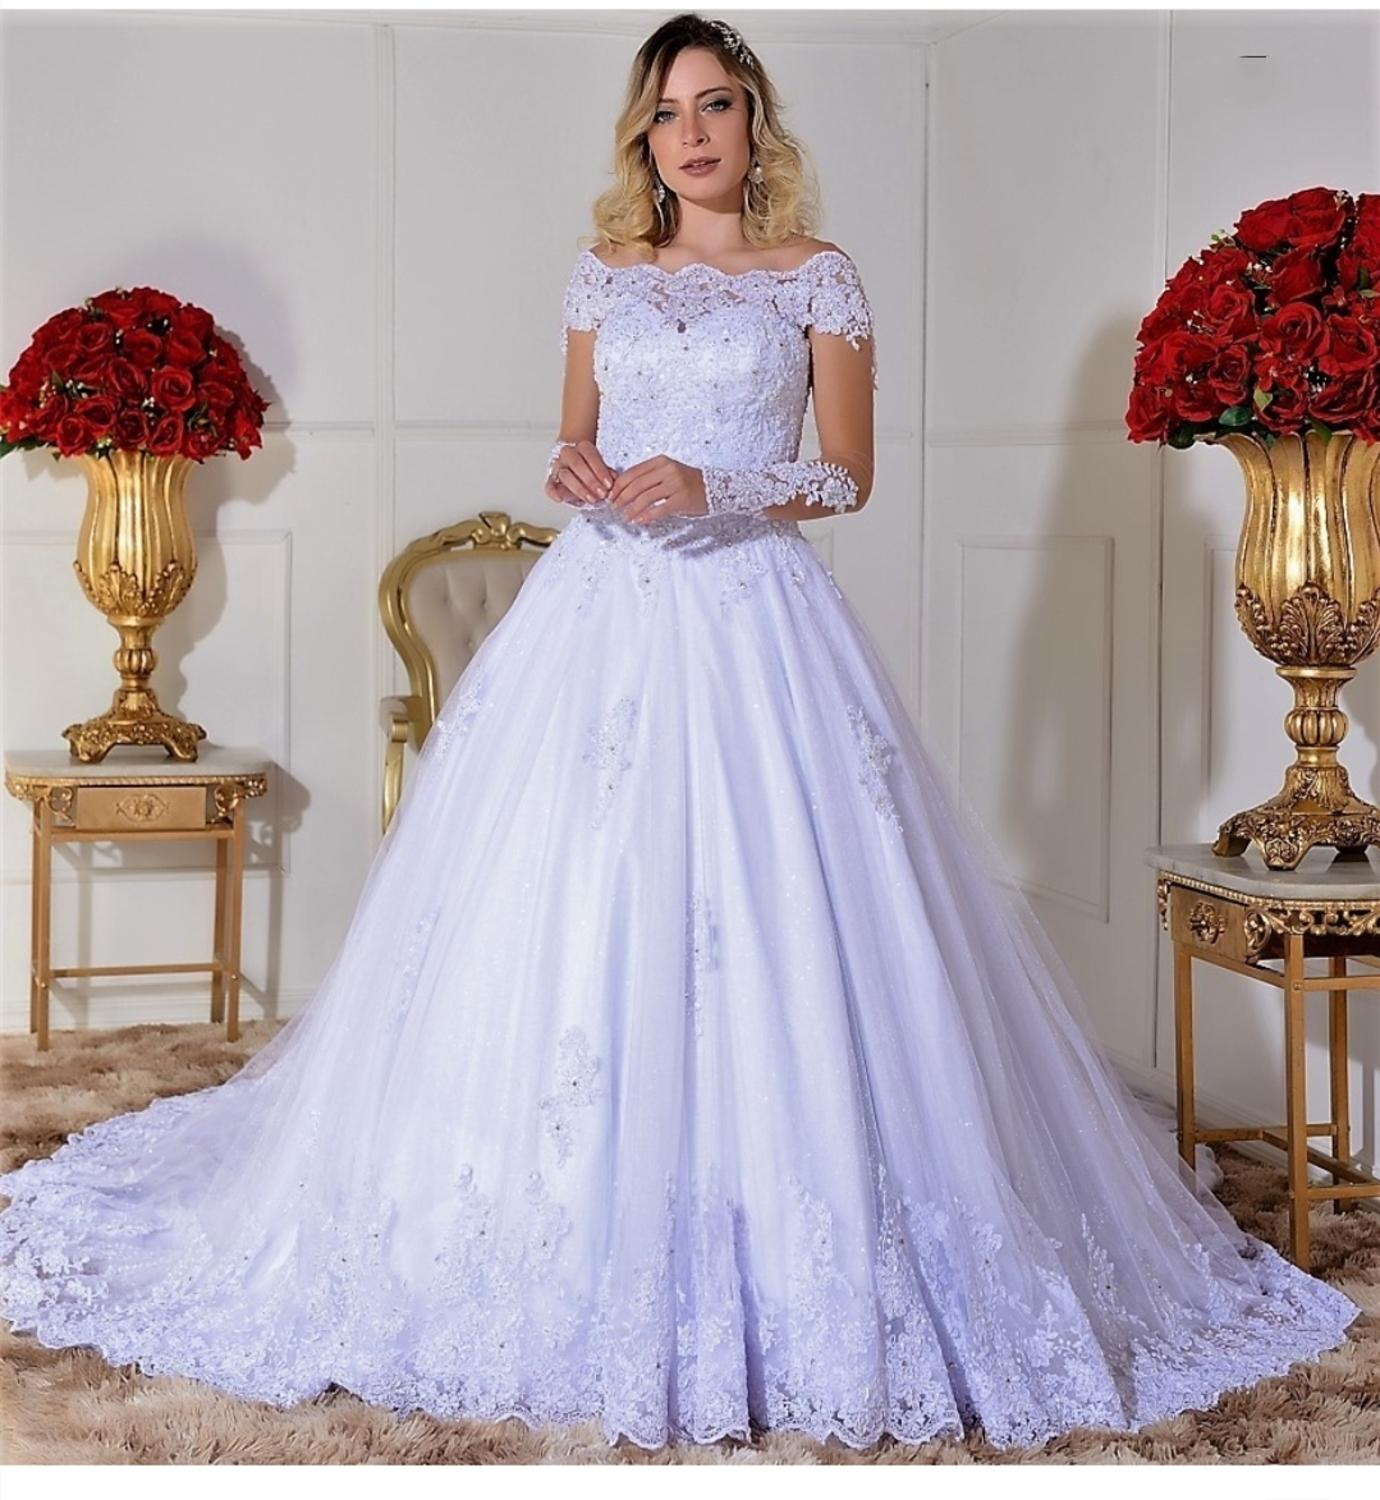 2020 Wedding  Dress One Shoulder With Train Long Sleeve Lace Appliques Bridal Gowns Gorgeous Vestido De Noiva Princesa Charming